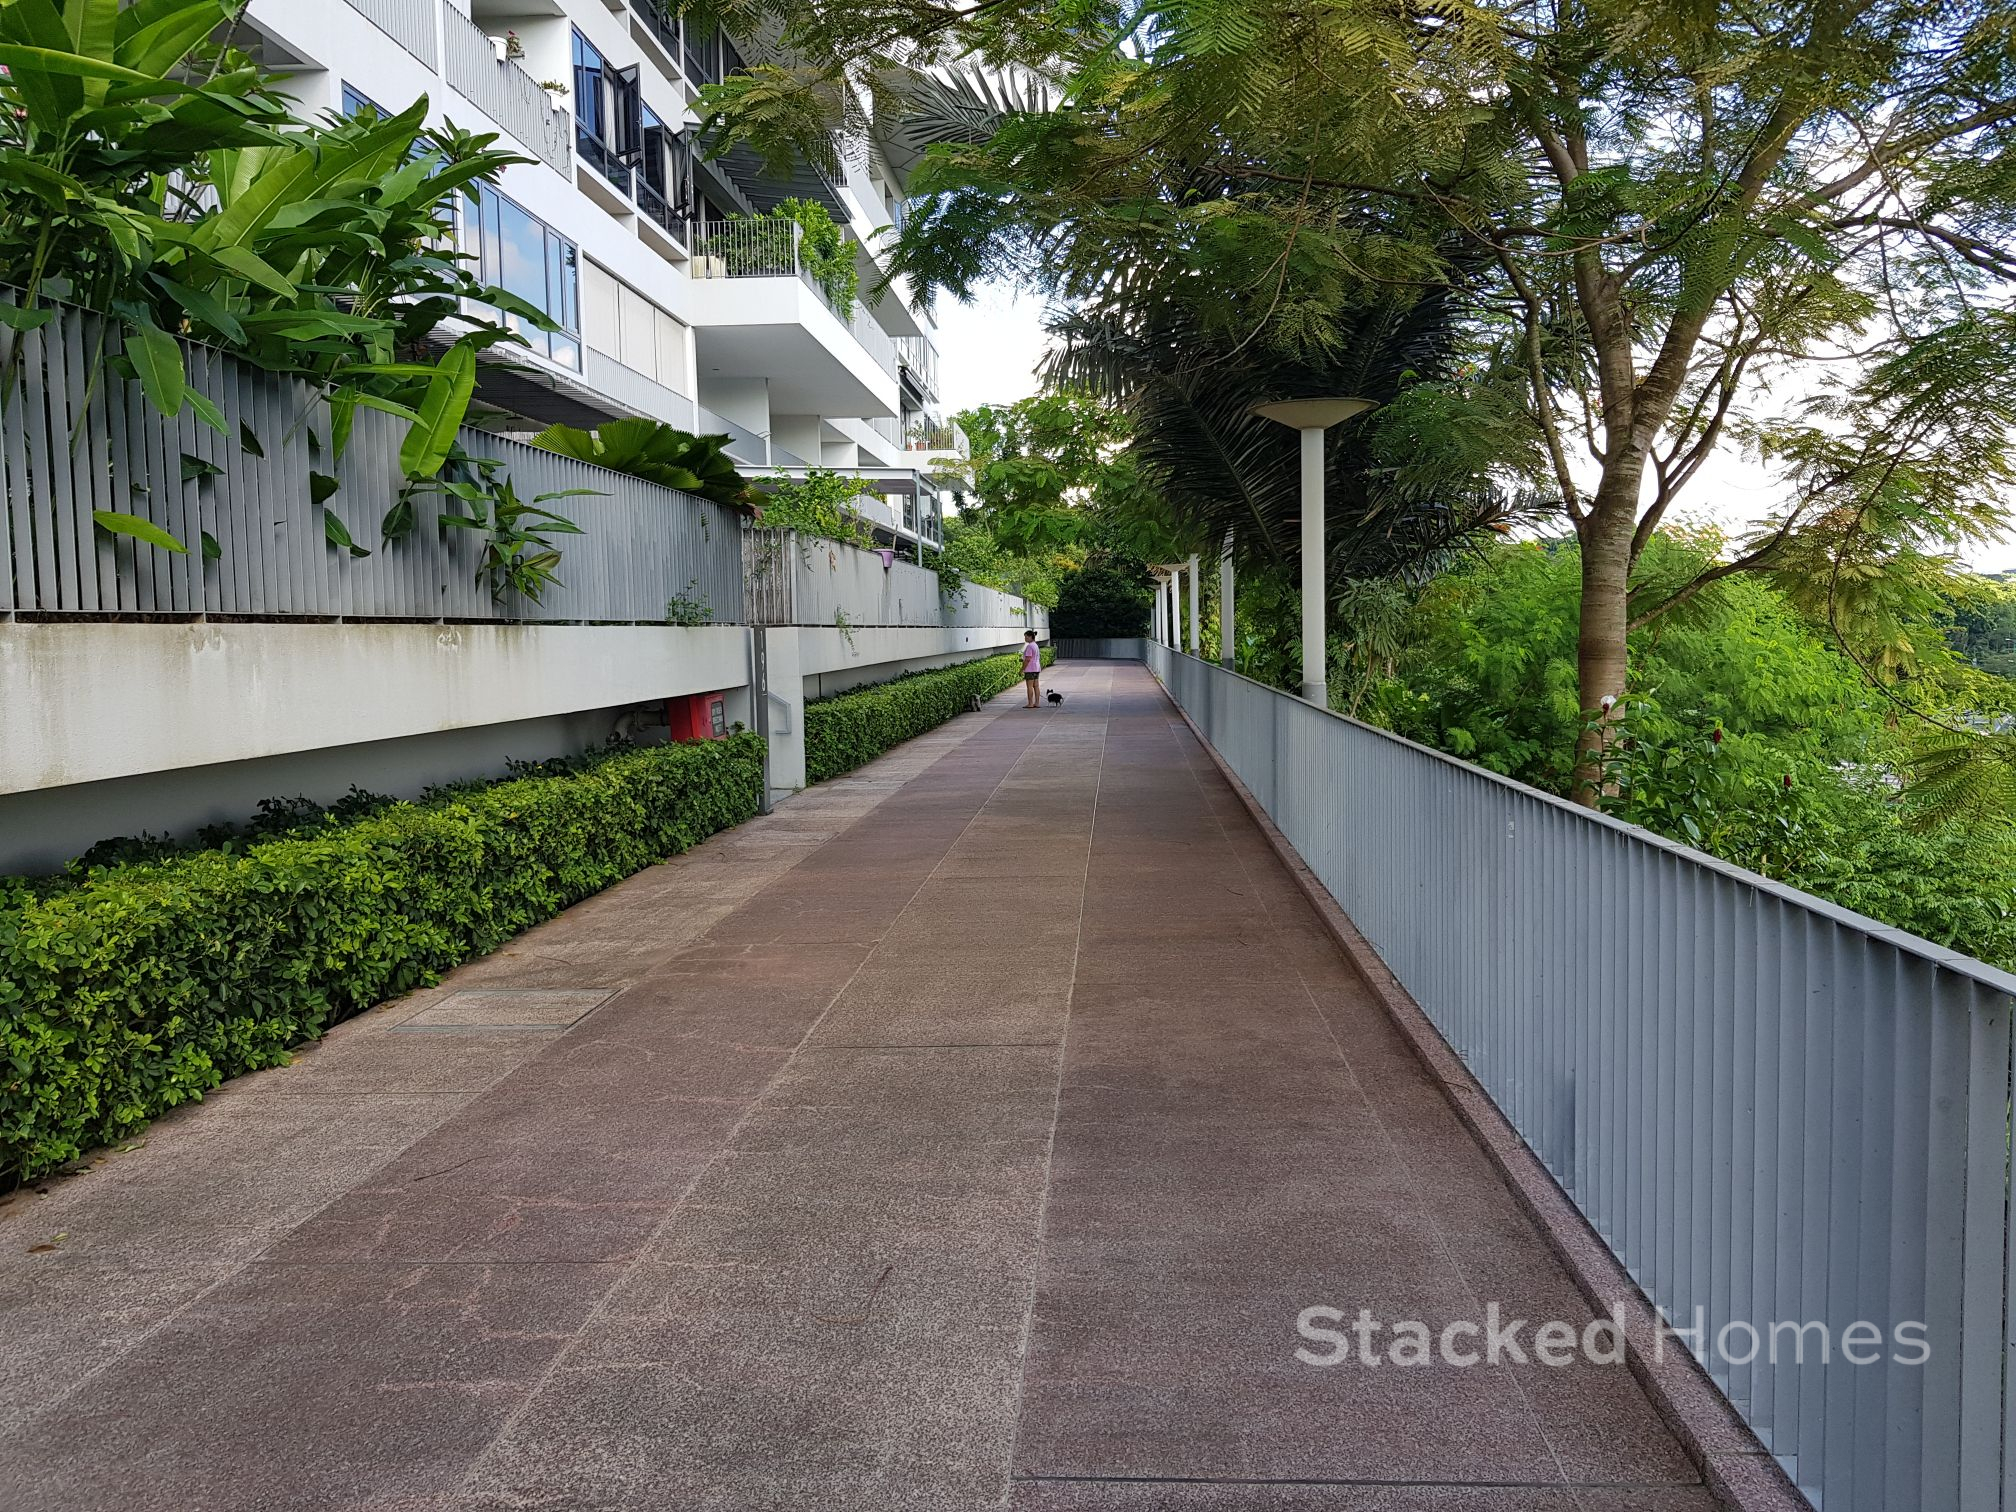 the interlace jogging track